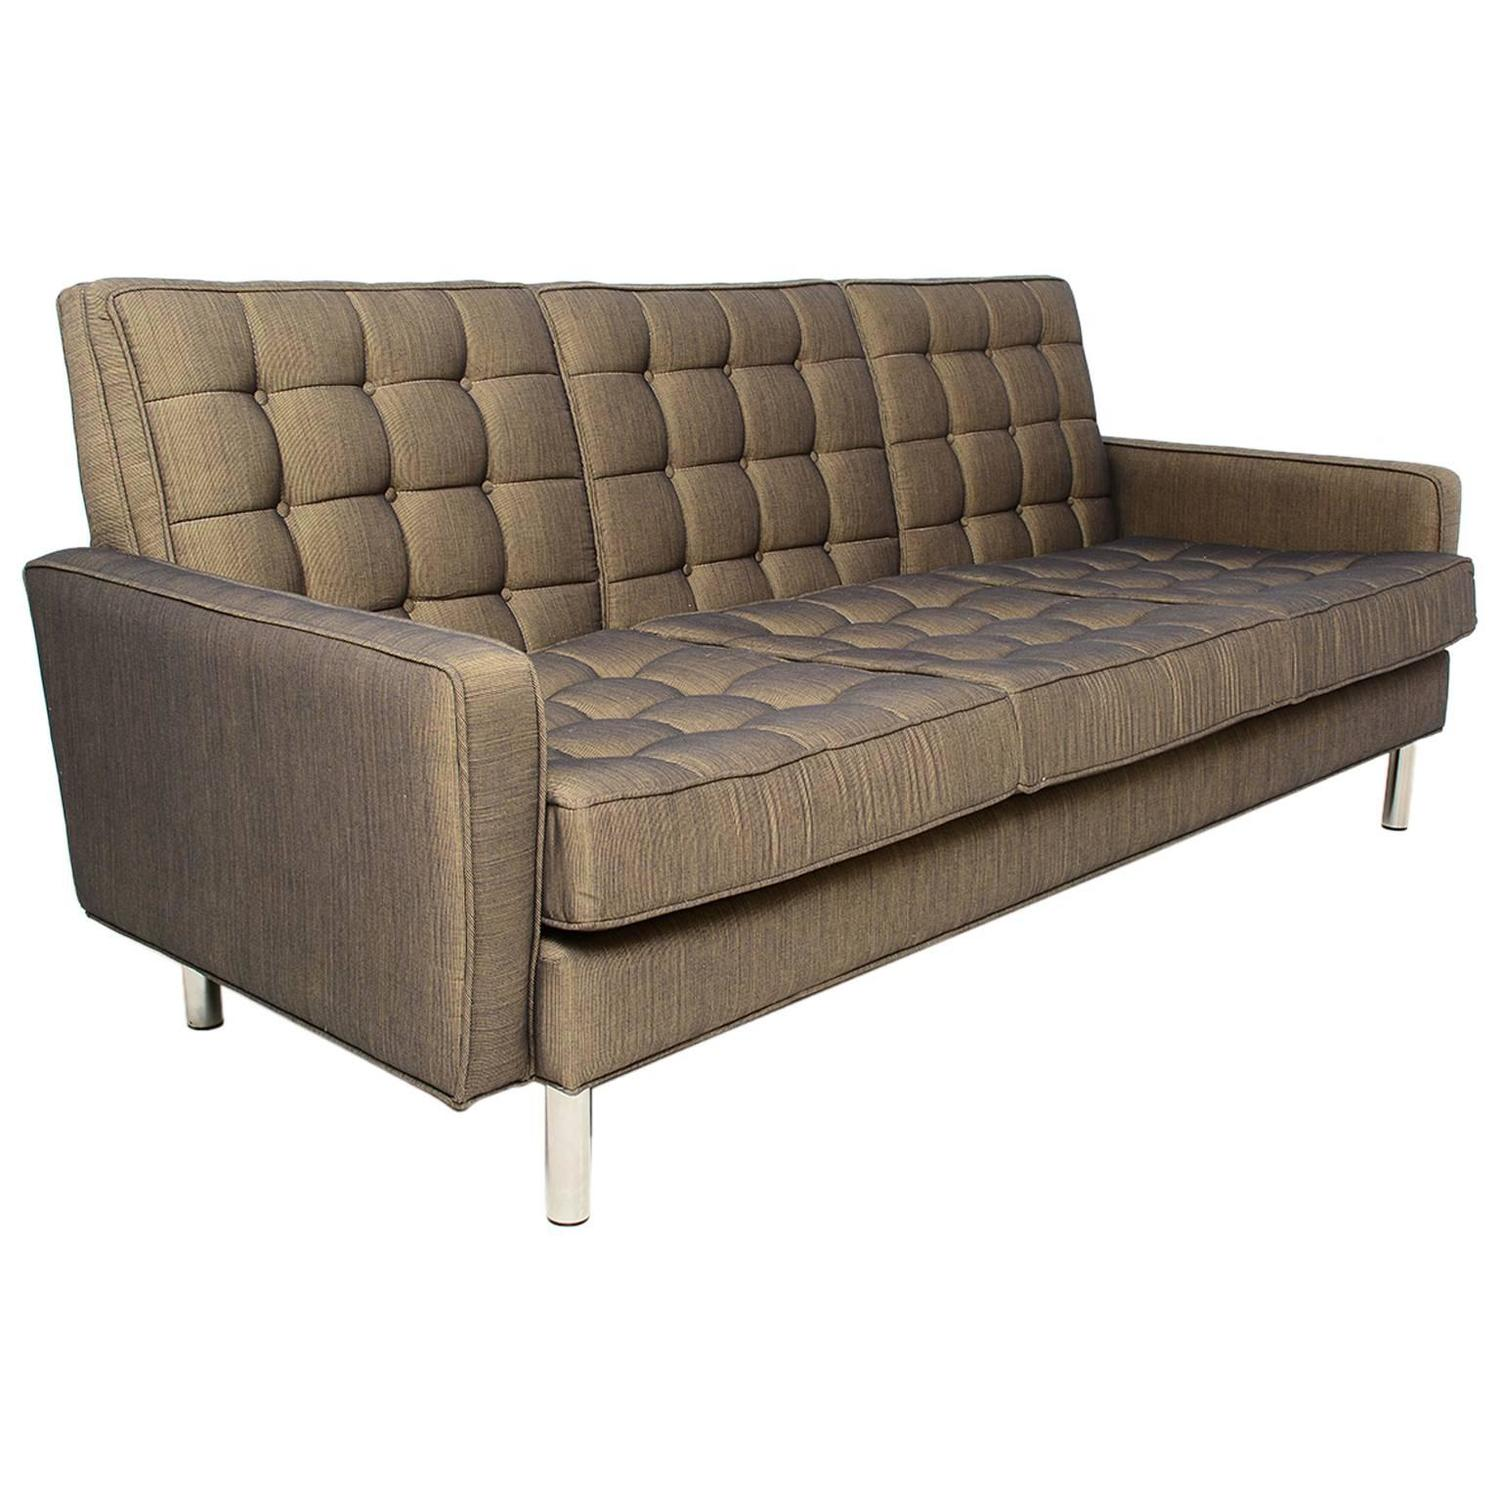 Modern sofas for sale for Modern sofas for sale